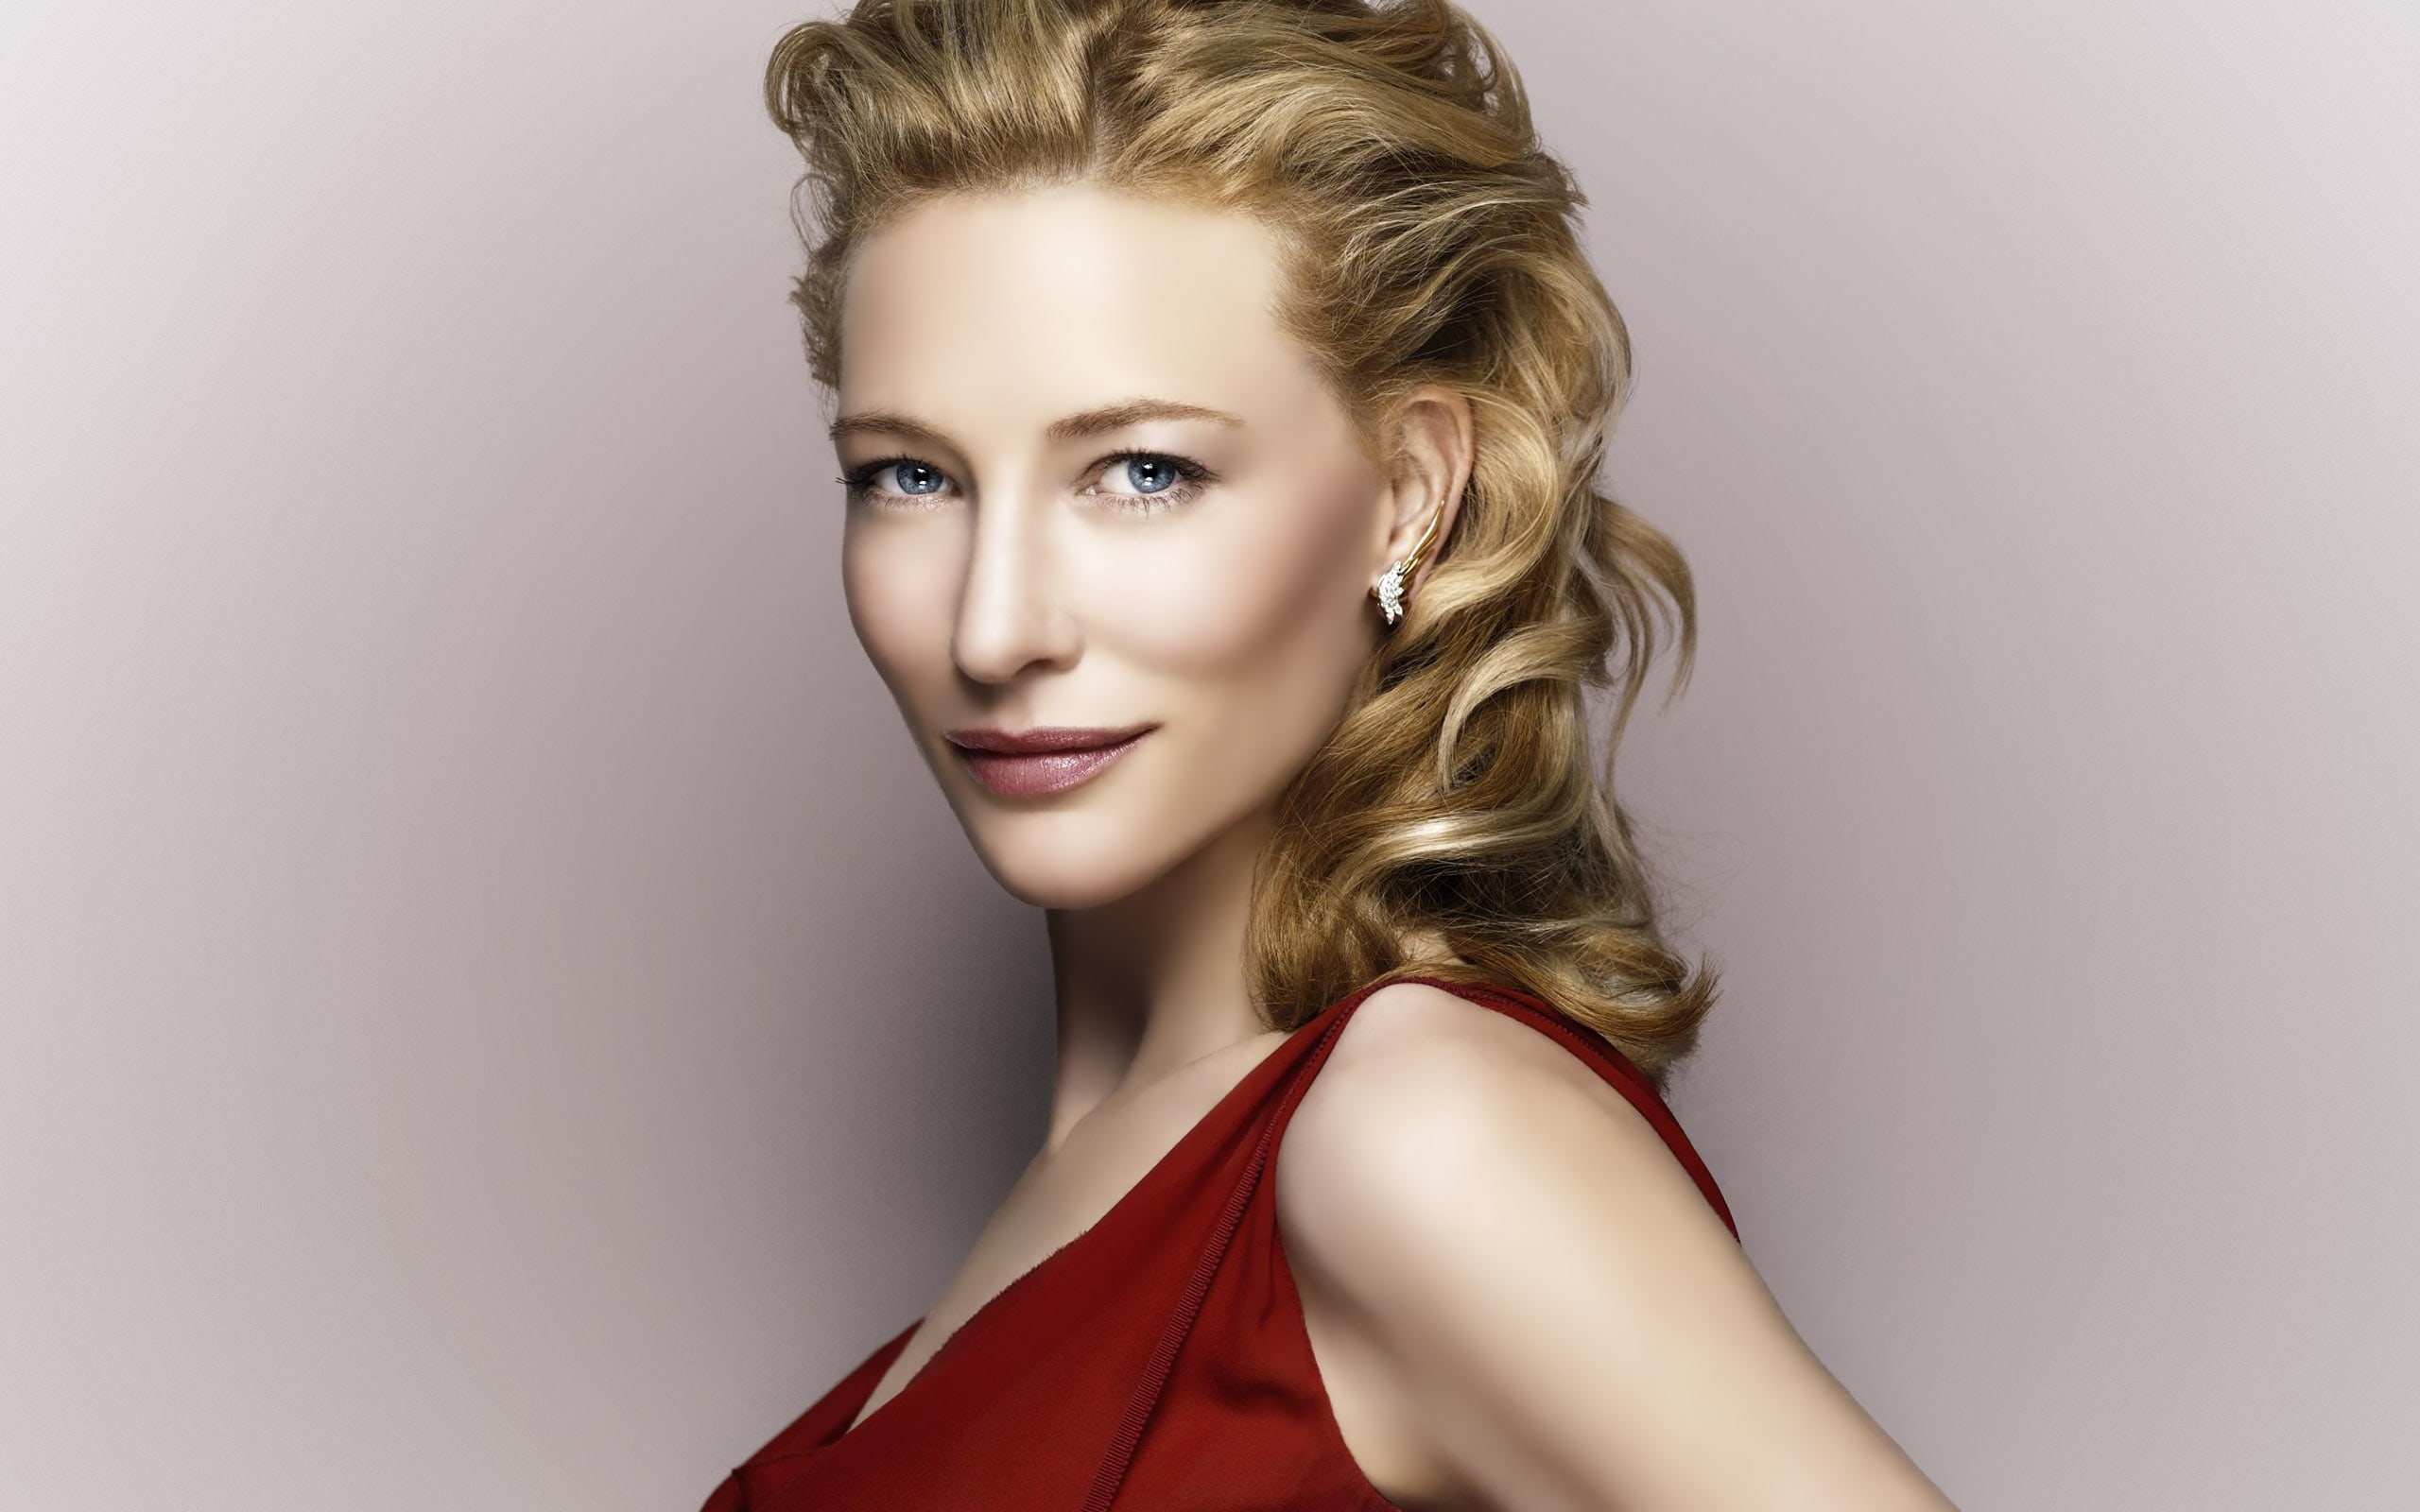 Cate Blanchett Widescreen for desktop